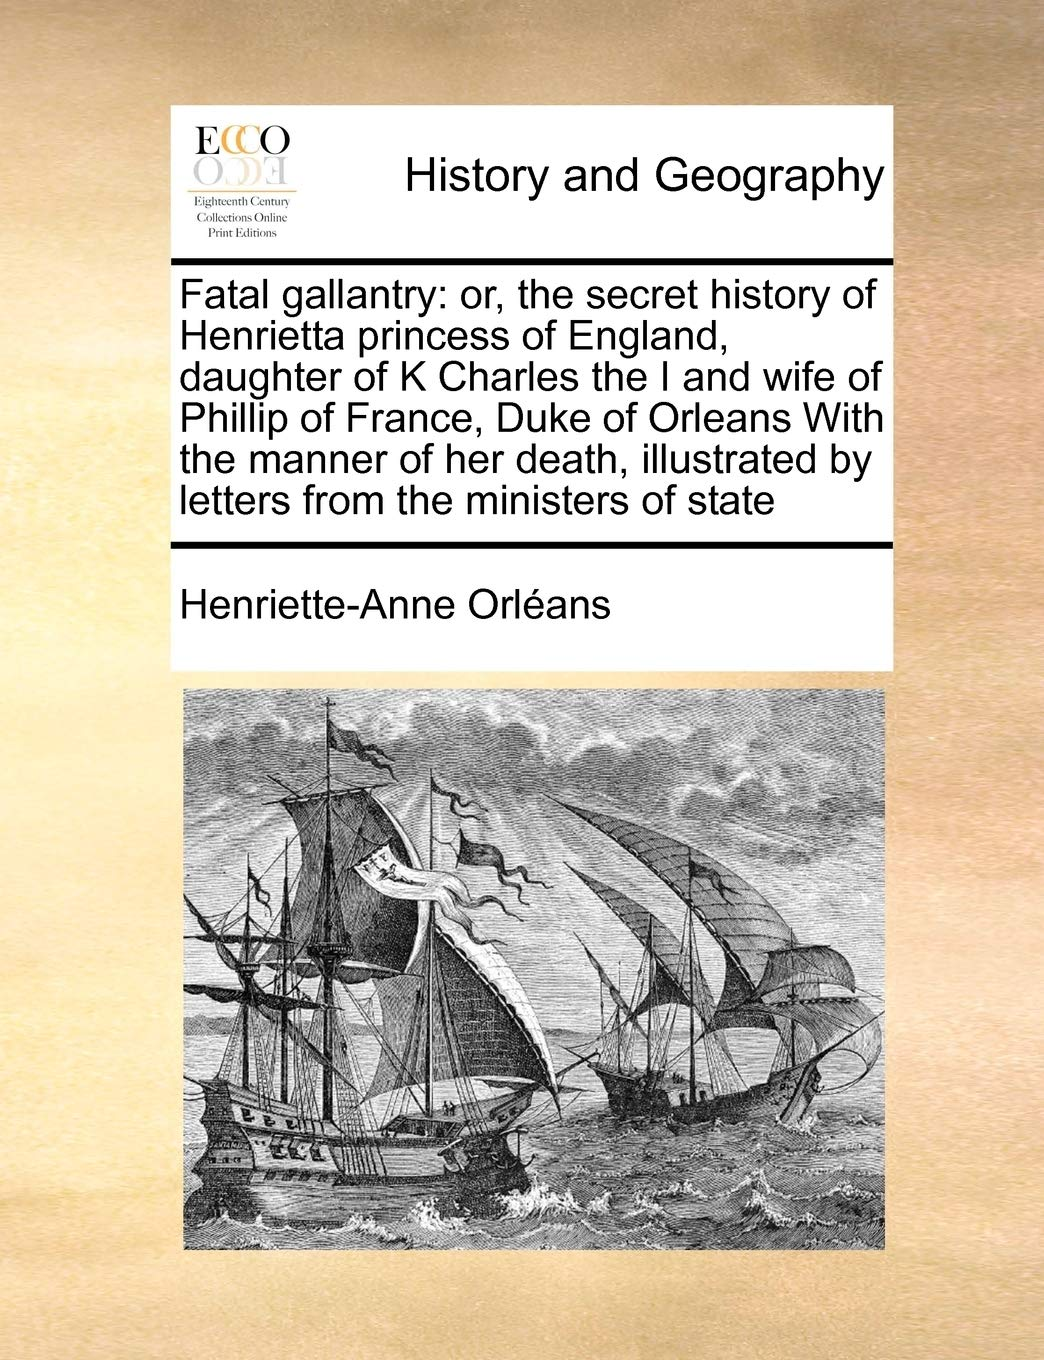 Fatal gallantry: or, the secret history of Henrietta princess of England, daughter of K Charles the I and wife of Phillip of France, Duke of Orleans ... by letters from the ministers of state